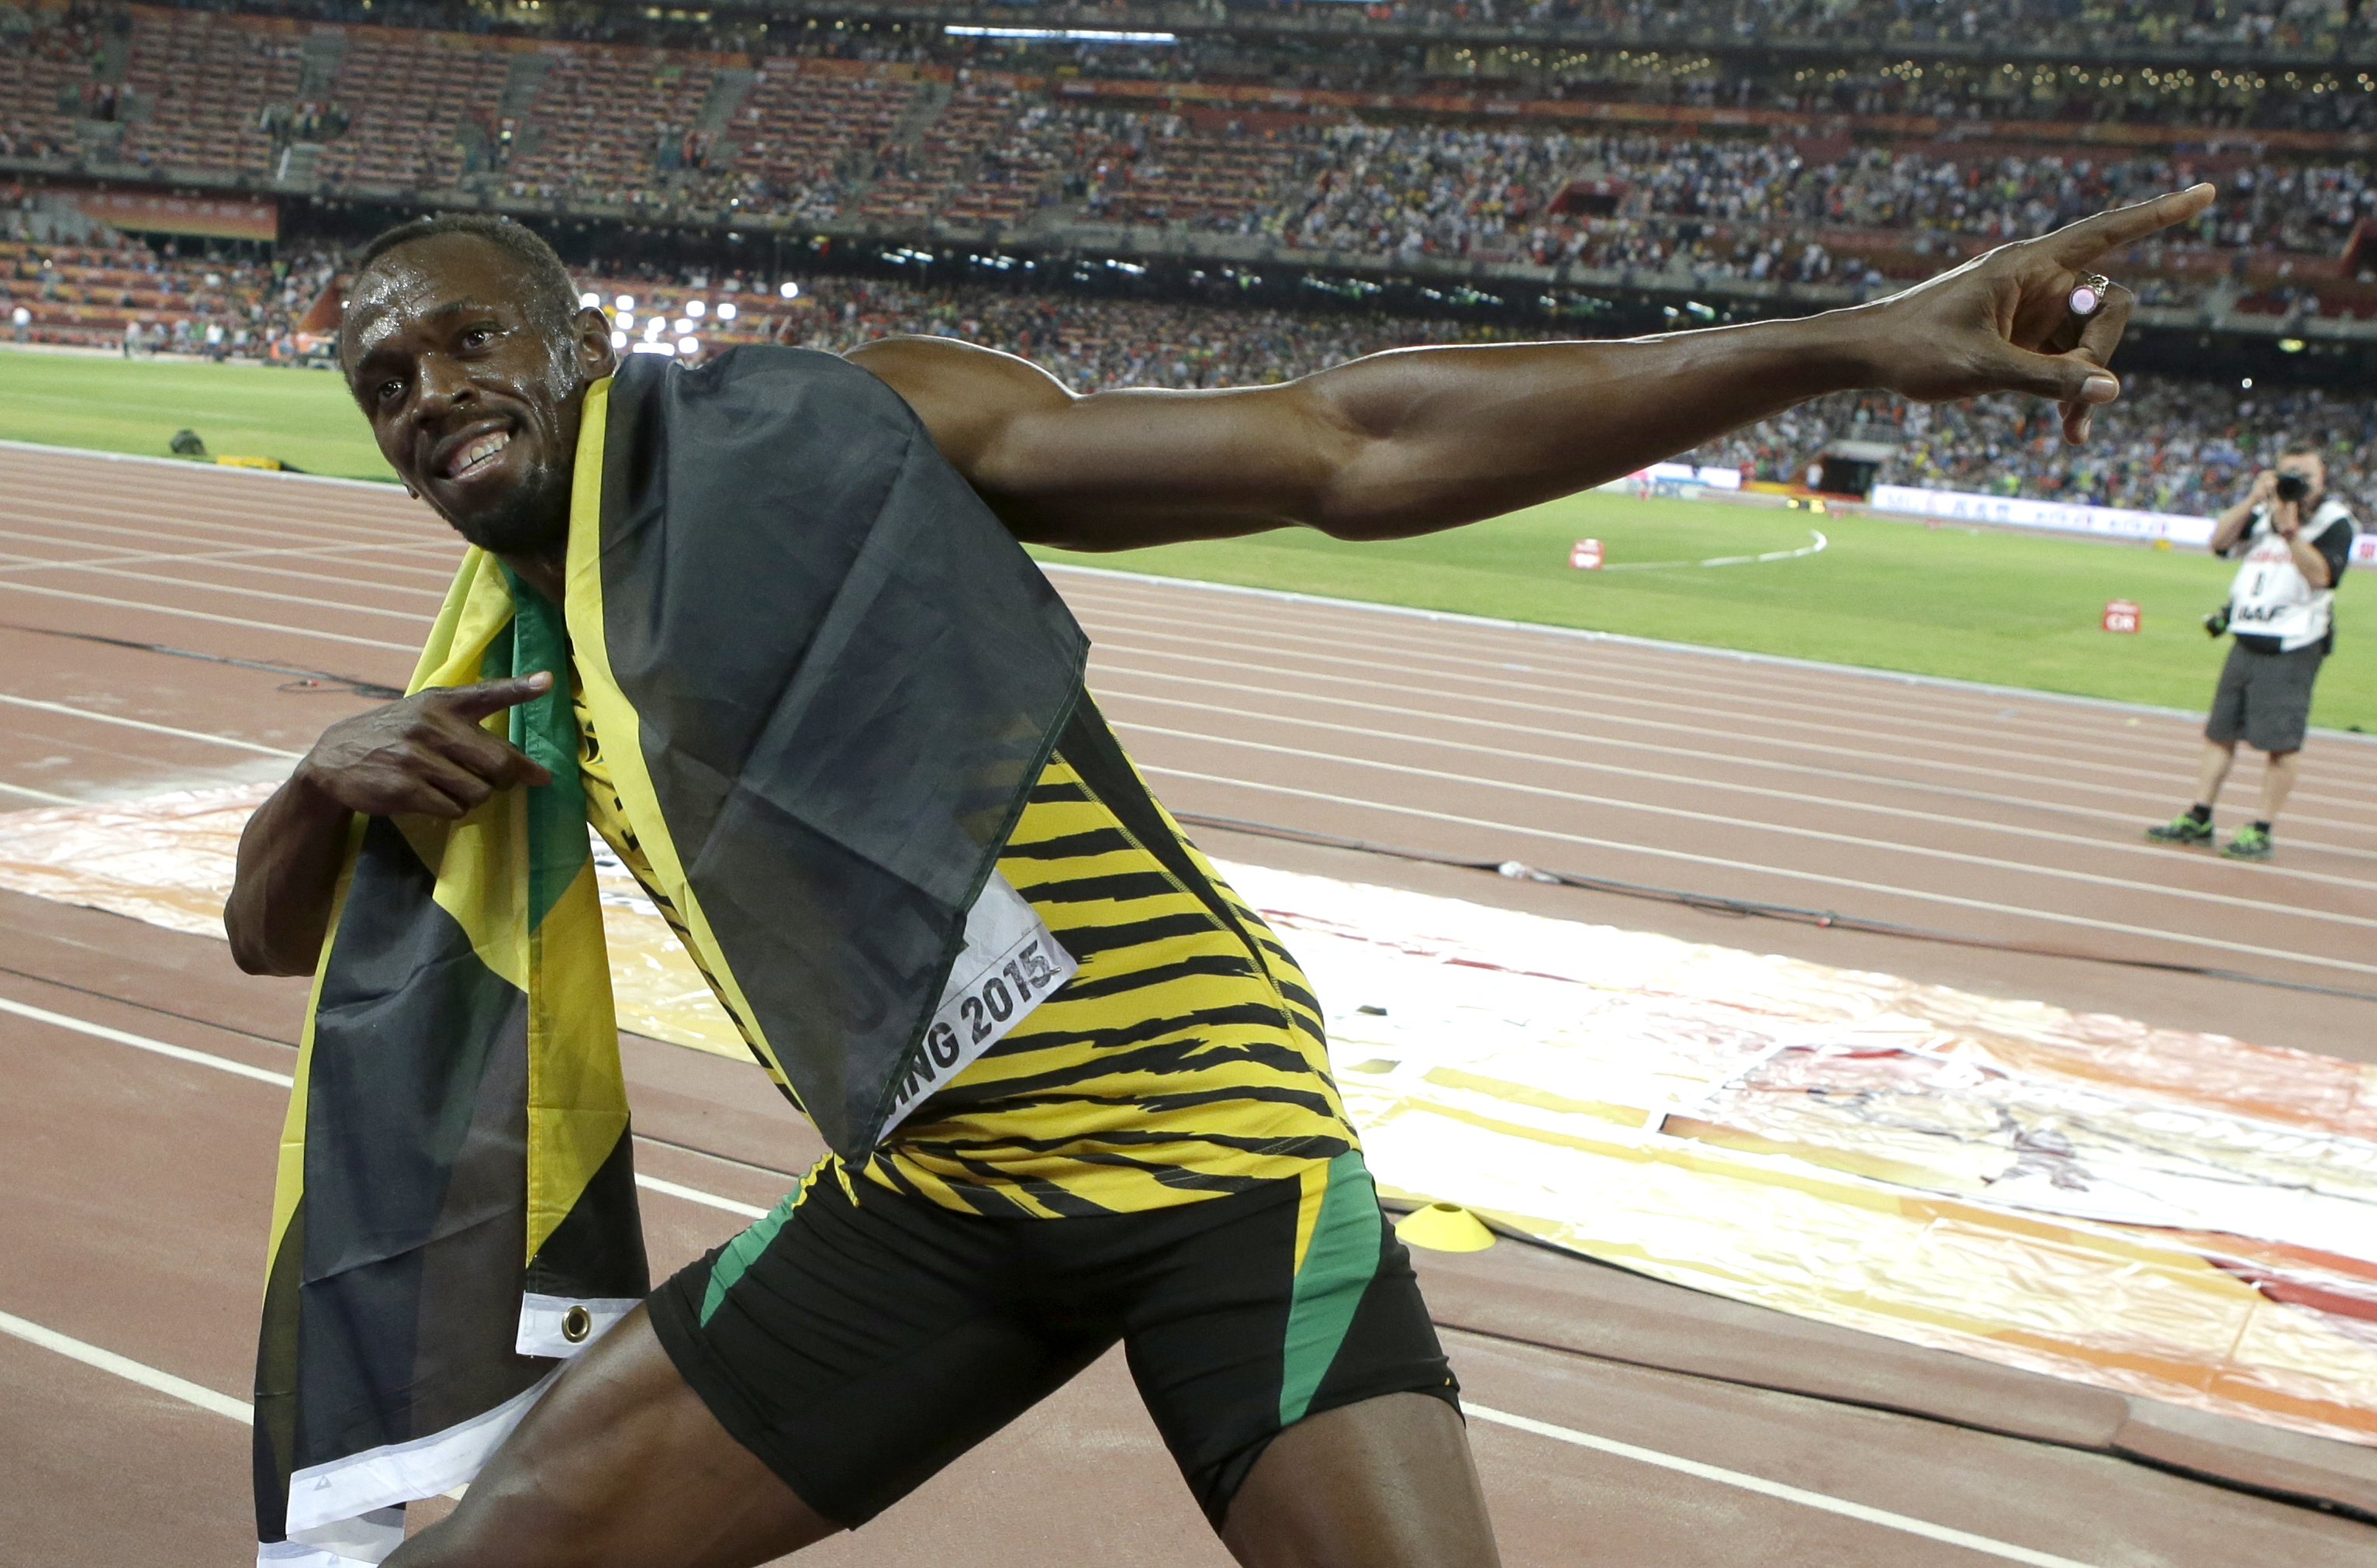 FILE - In this Aug. 23, 2015, file photo, Jamaica's Usain Bolt celebrates after winning the gold medal in the men's 100-meter ahead of United States' at the World Athletics Championships at the Bird's Nest stadium in Beijing. Even though David Rudisha, th